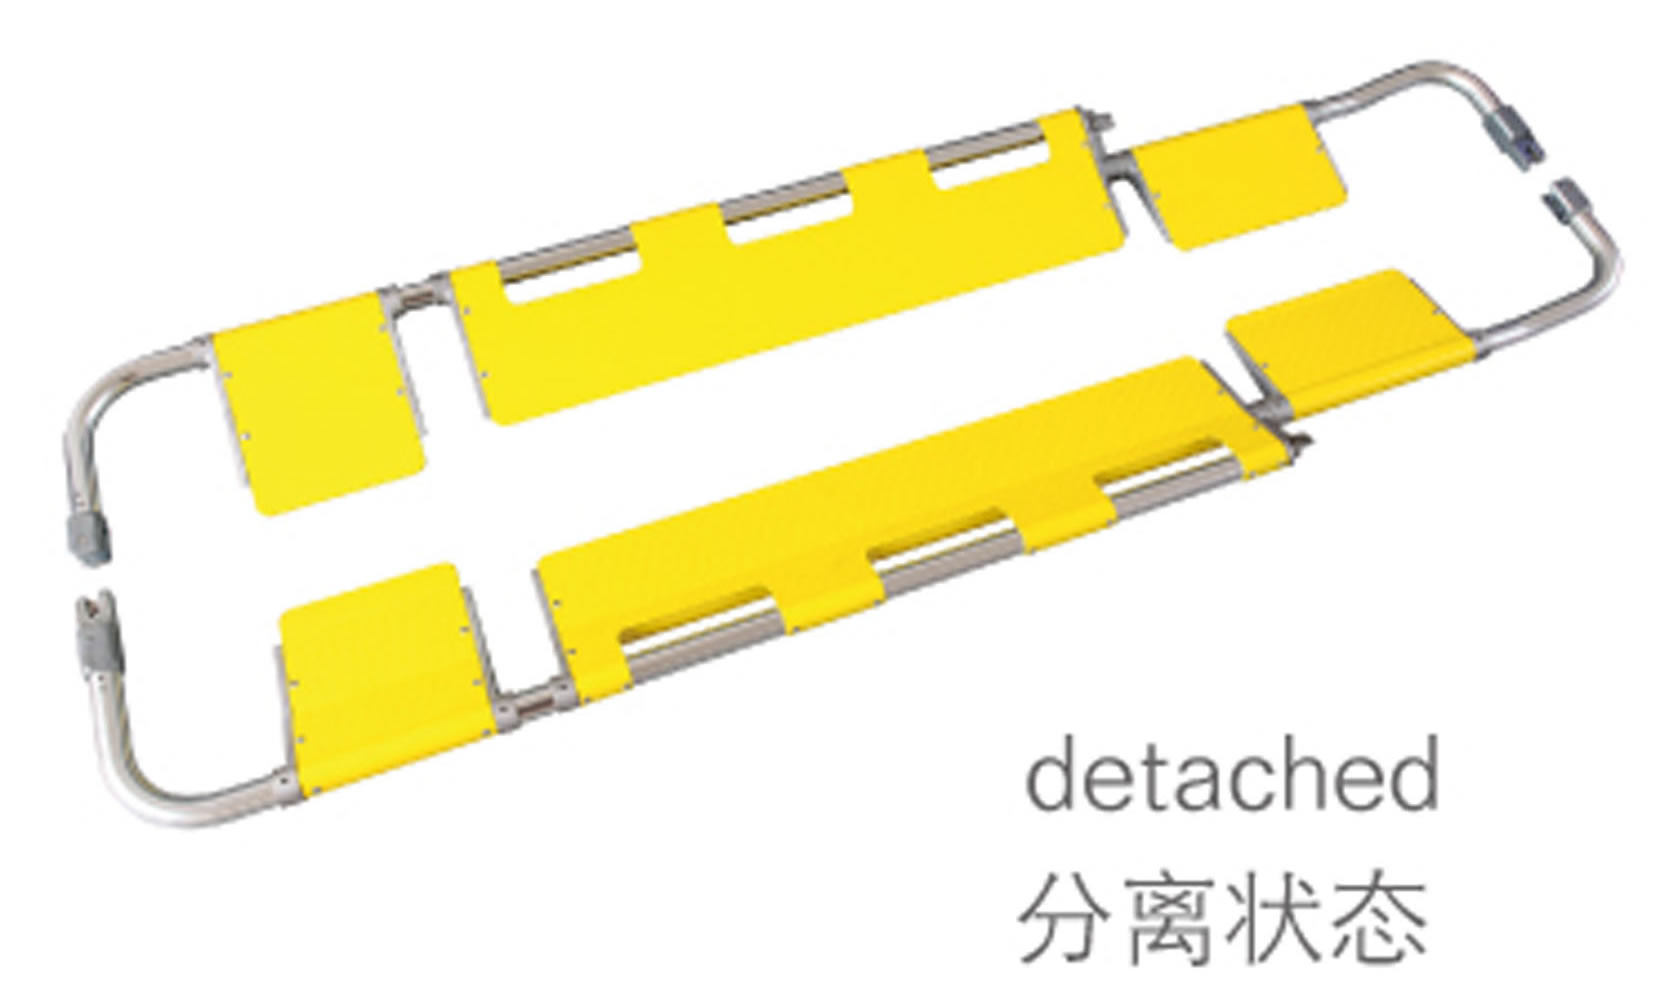 EDJ-001B2 Hot-selling folding stretcher/scoop stretcher/folding stretcher hospital equipment